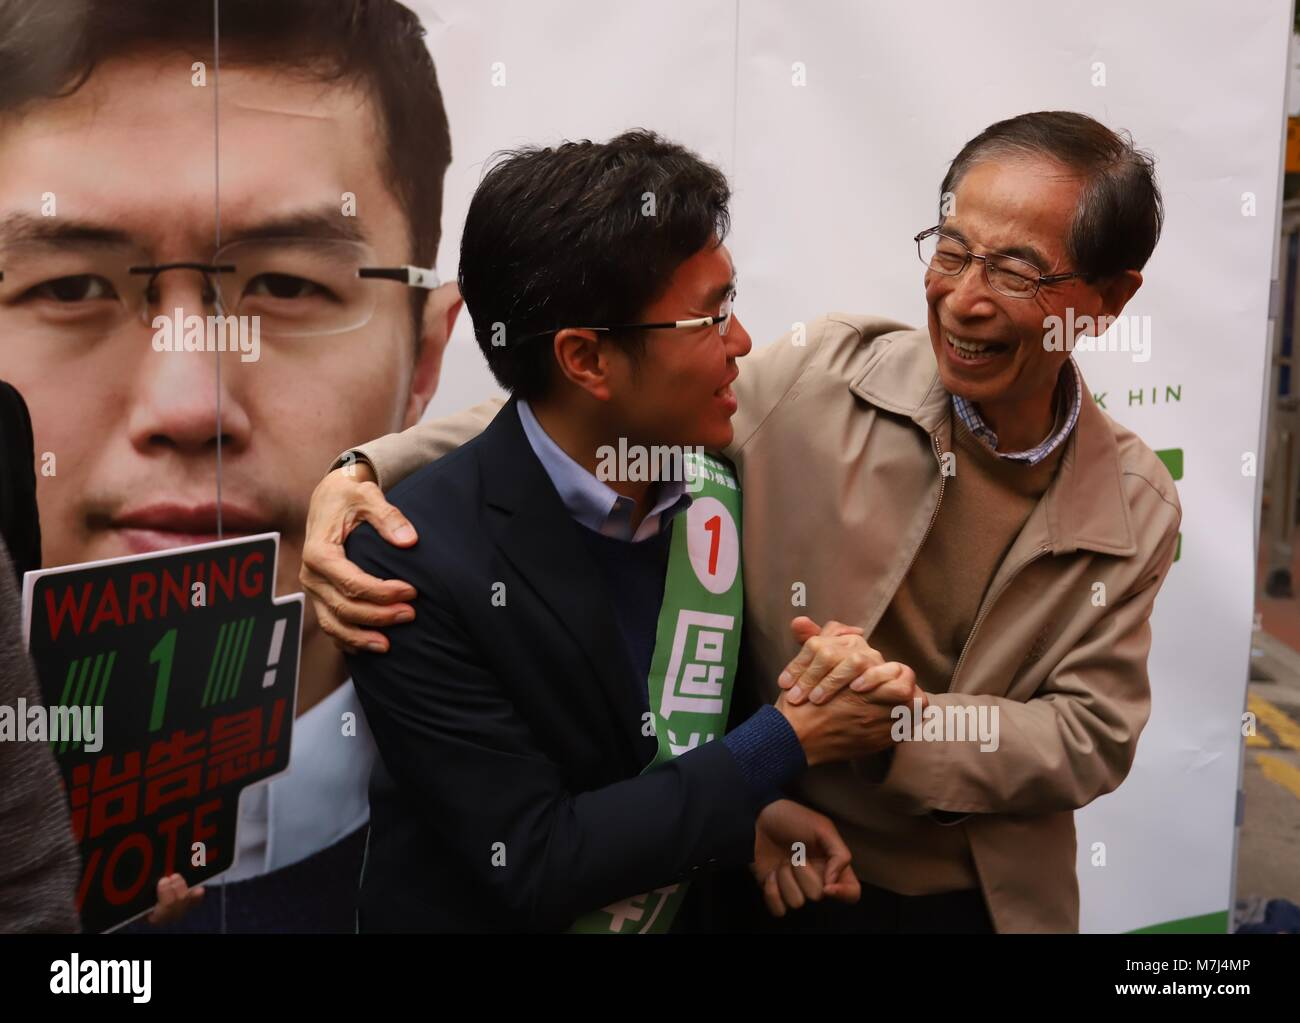 Hong Kong, CHINA. 11th Mar, 2018. Former Chairman of the DEMOCRATIC PARTY, Martin Lee ( R ) offer friendly support - Stock Image